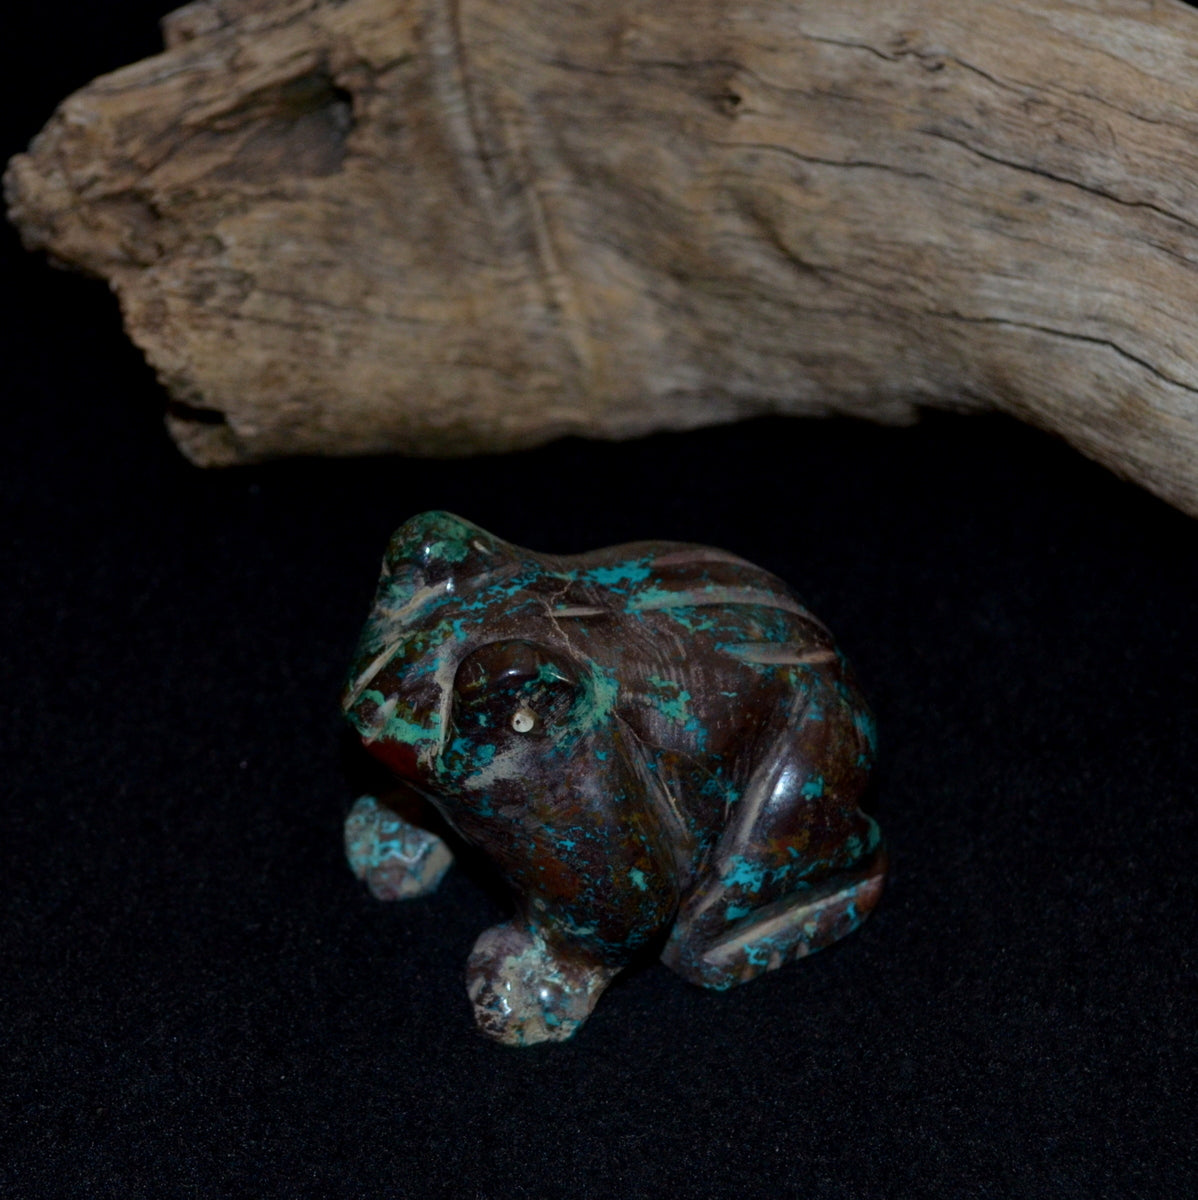 Shattuckite Cuprite Chrysocolla Hand Carved Frog - Humanity Spiritual Protective Grounding - Shop Now at Illiom Crystals - Afterpay Available